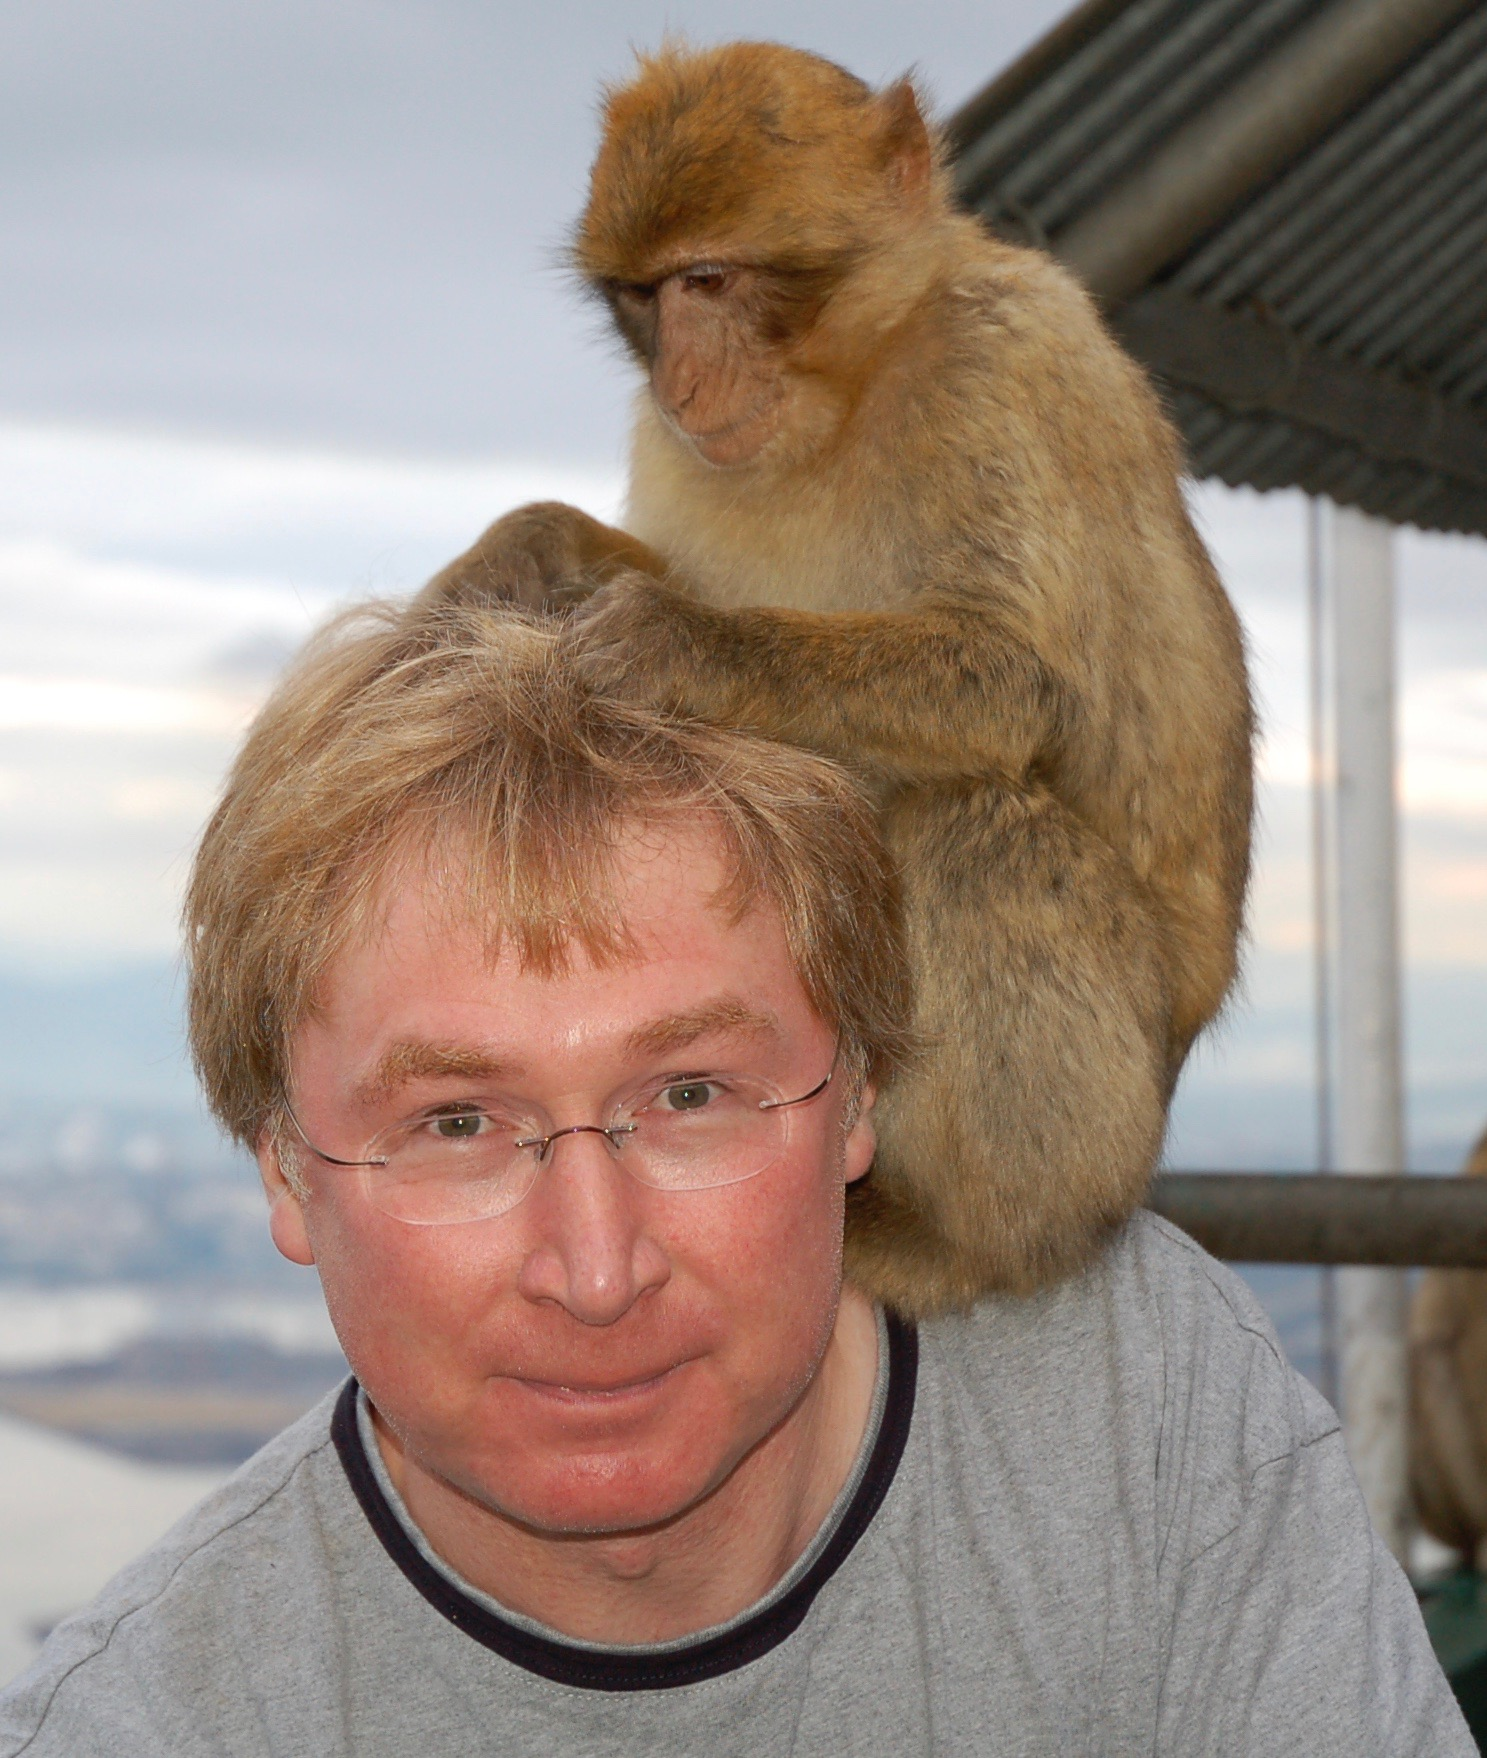 A monkey sat on the shoulder of Vince